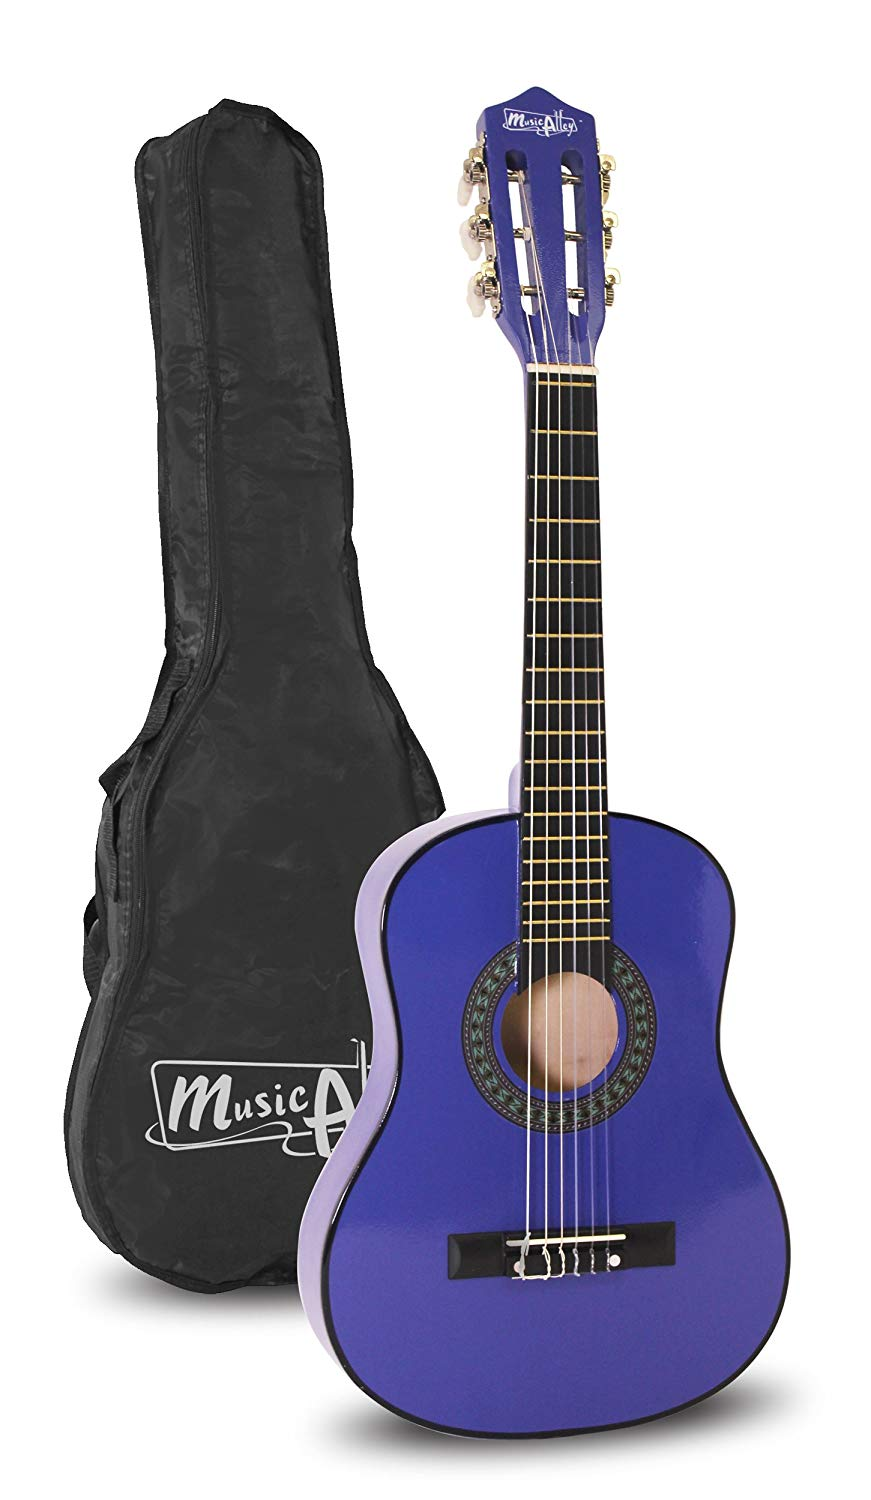 Music Alley 6 String 30 inch Half Size Junior Guitar for Young Kids